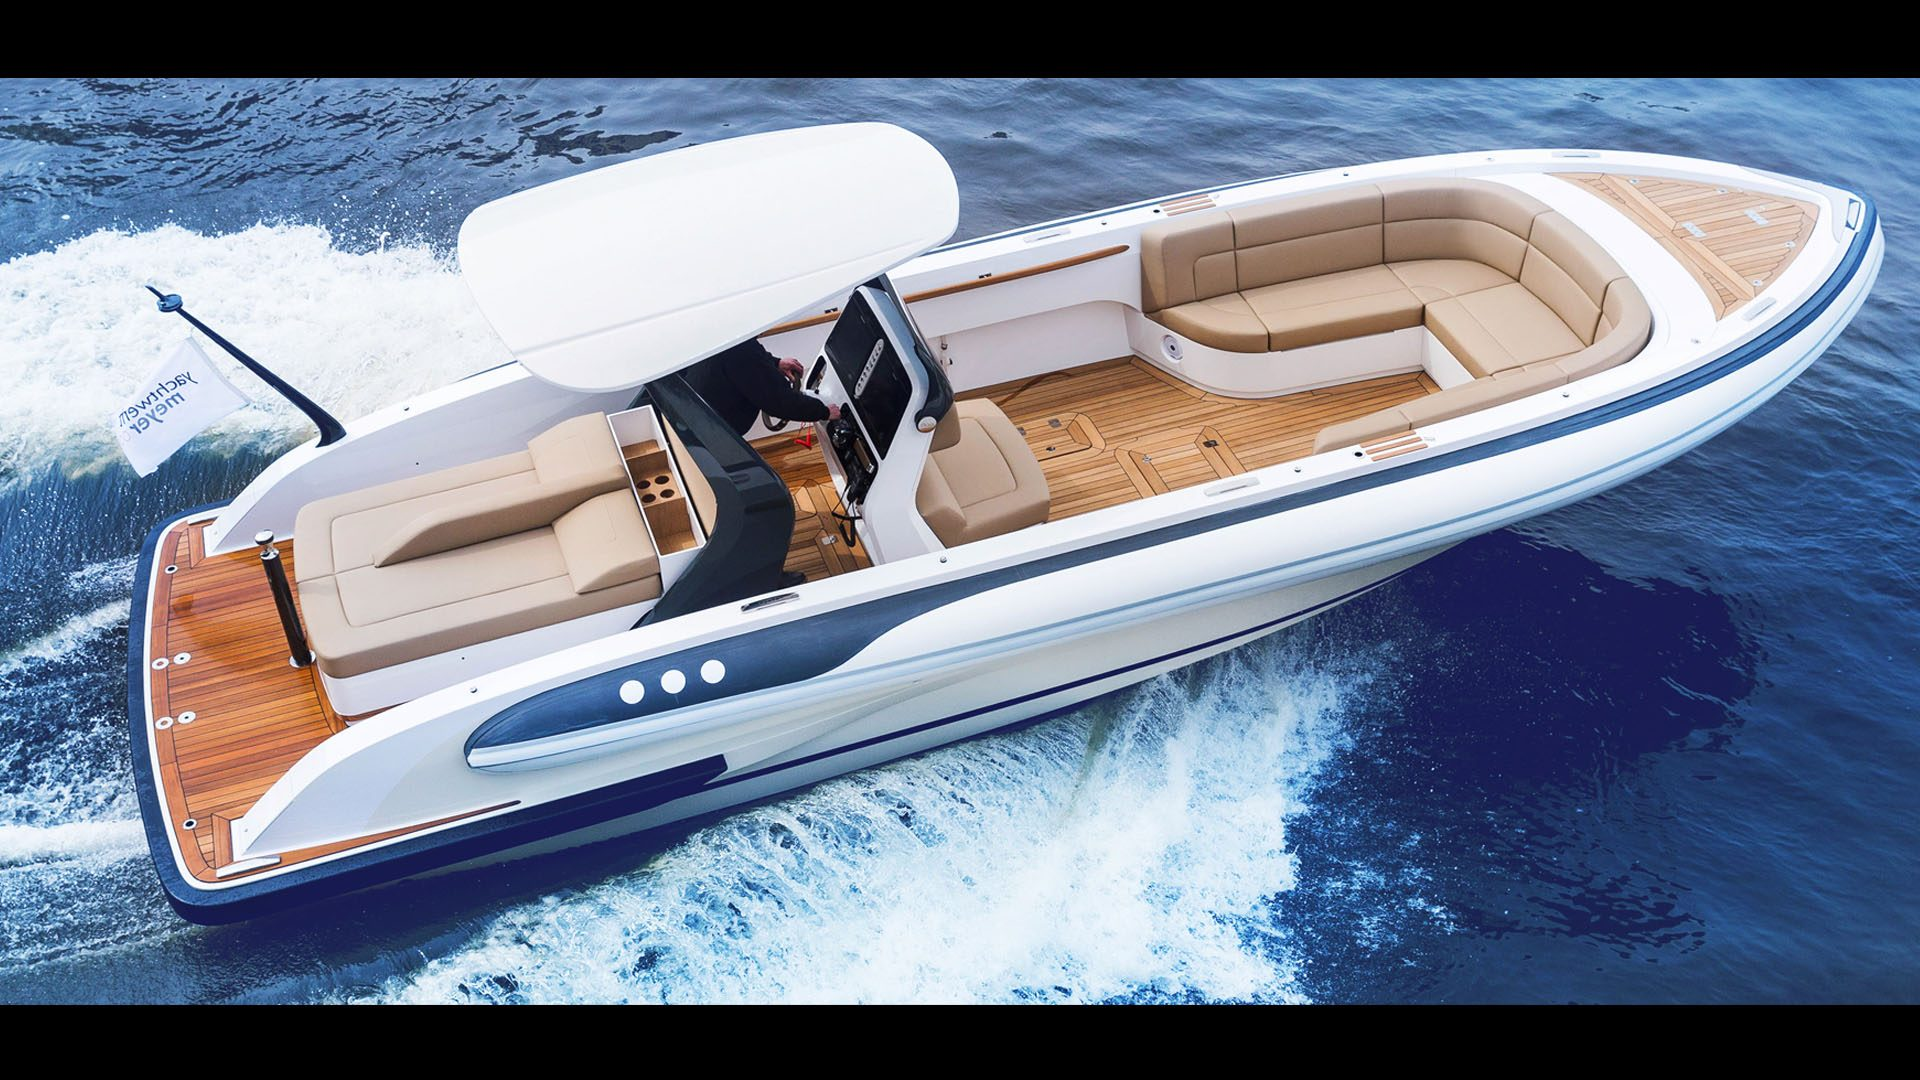 Rib boat Silverline is a luxurious superyacht tender designed by Hamid Bekradi of HBD Studios manufactured in Germany